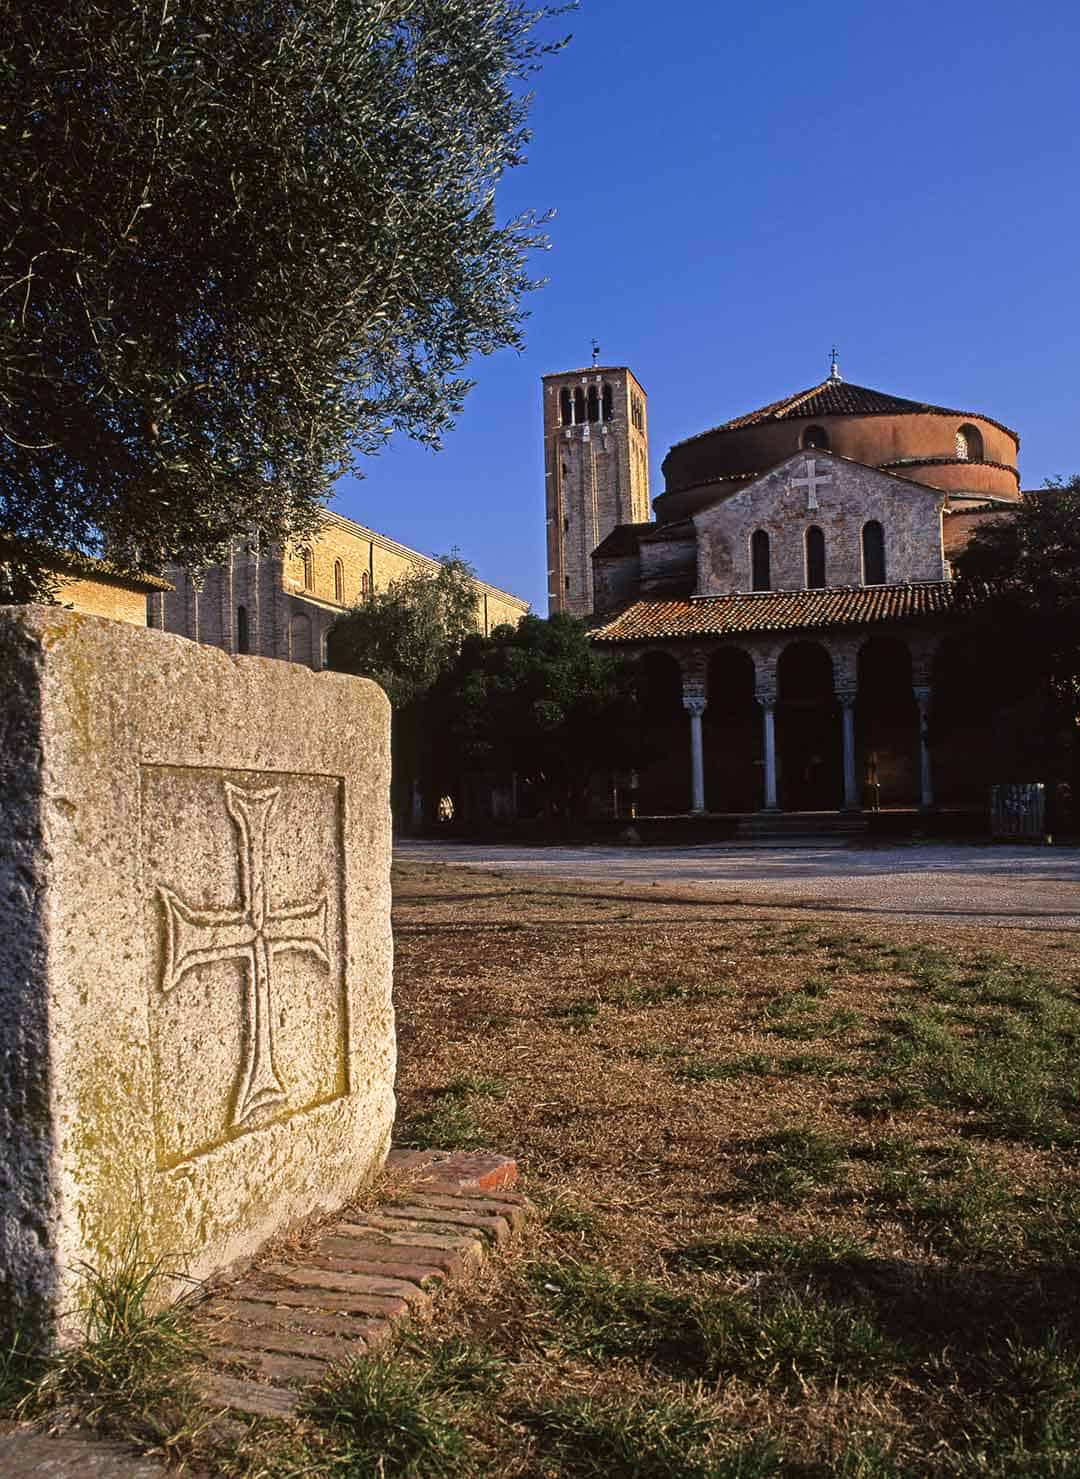 Image of Santa Fosca church and the Cathedral tower, Torcello, Venice, Italy